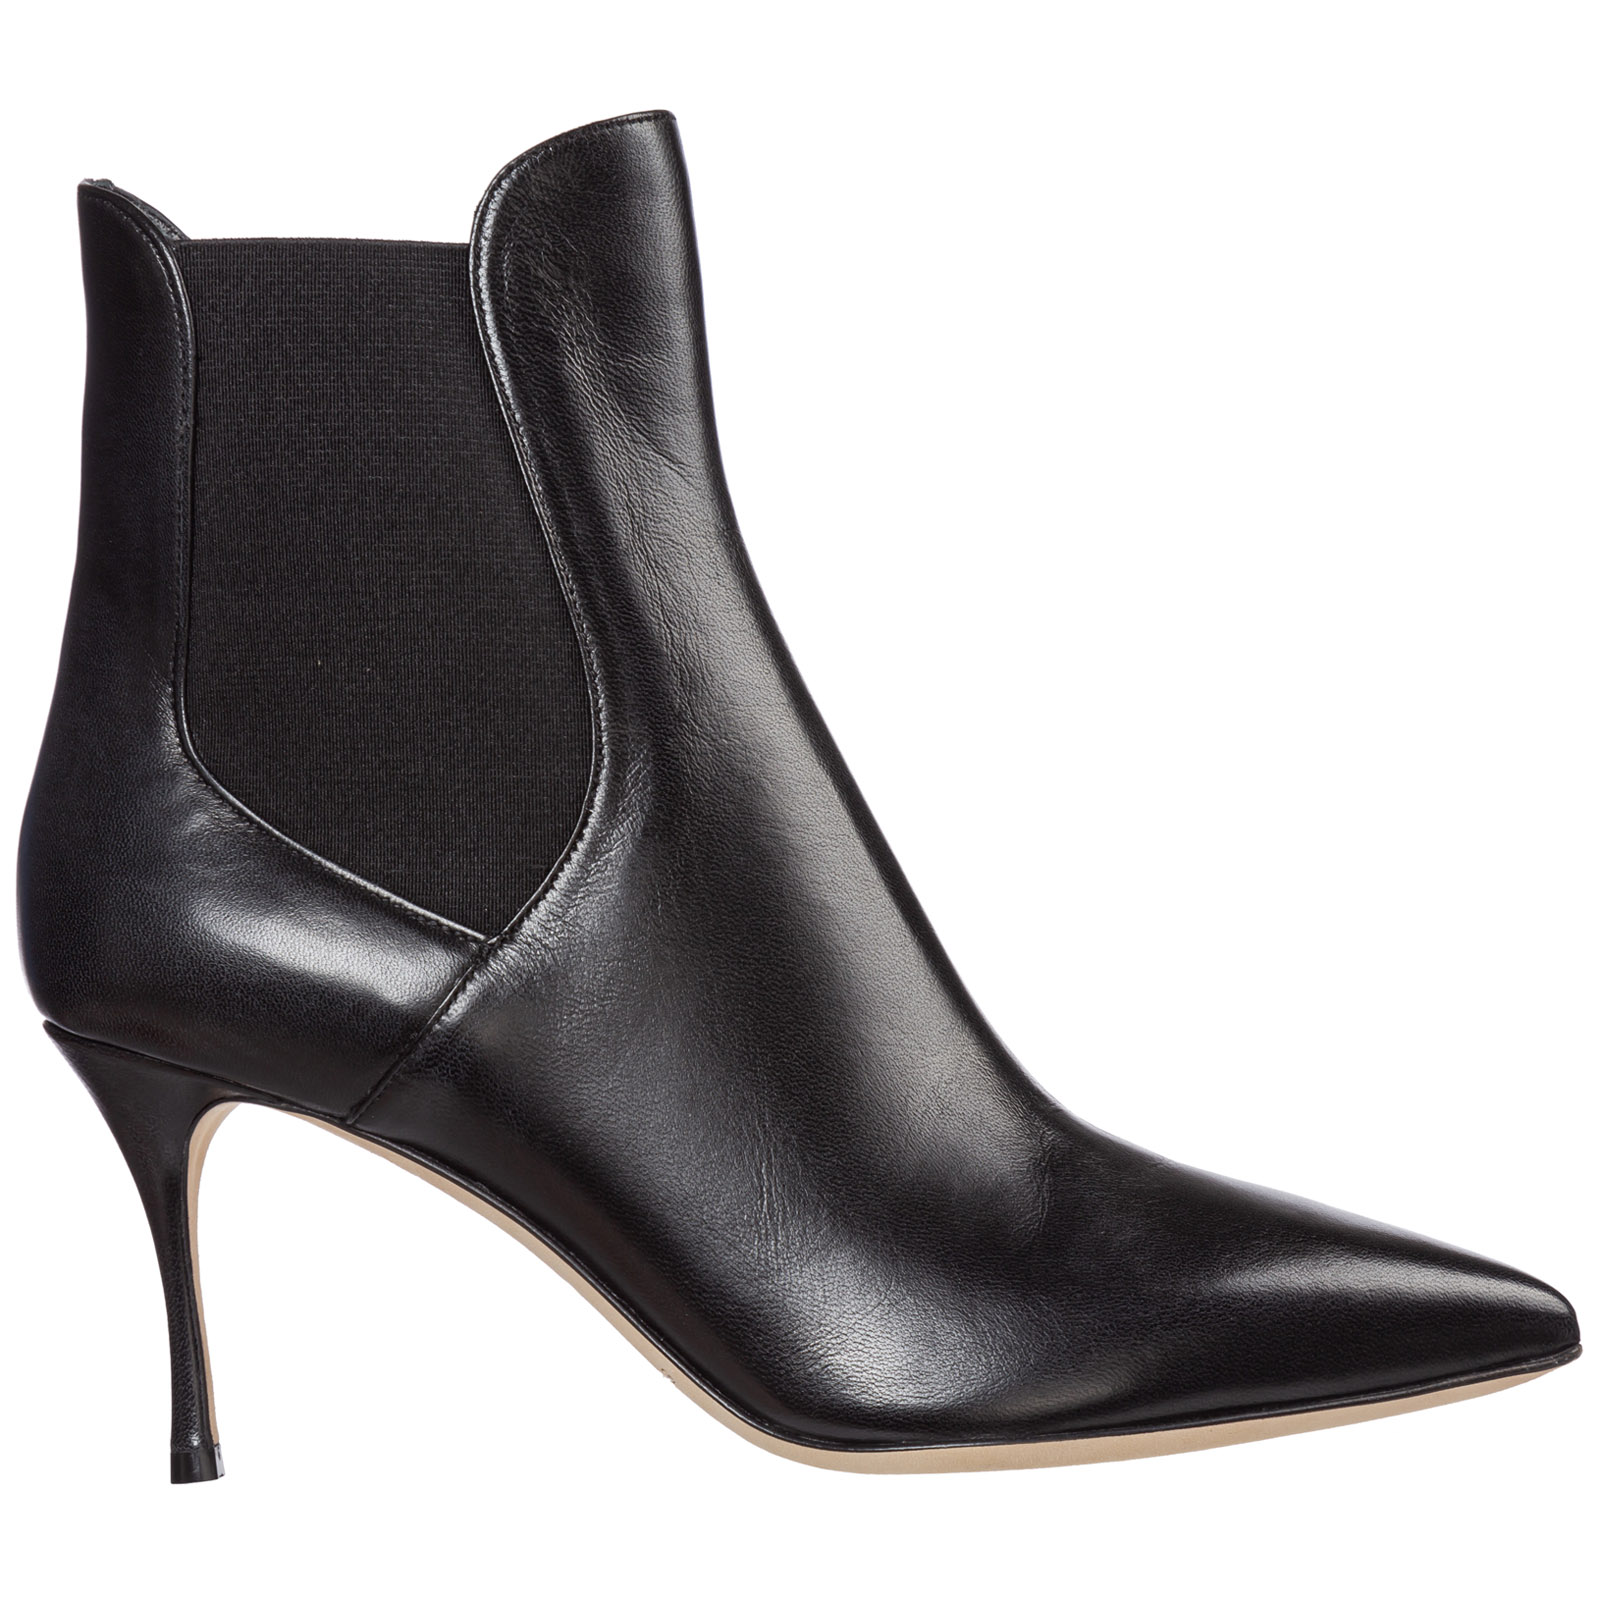 Sergio Rossi Boots WOMEN'S LEATHER HEEL ANKLE BOOTS BOOTIES GODIVA